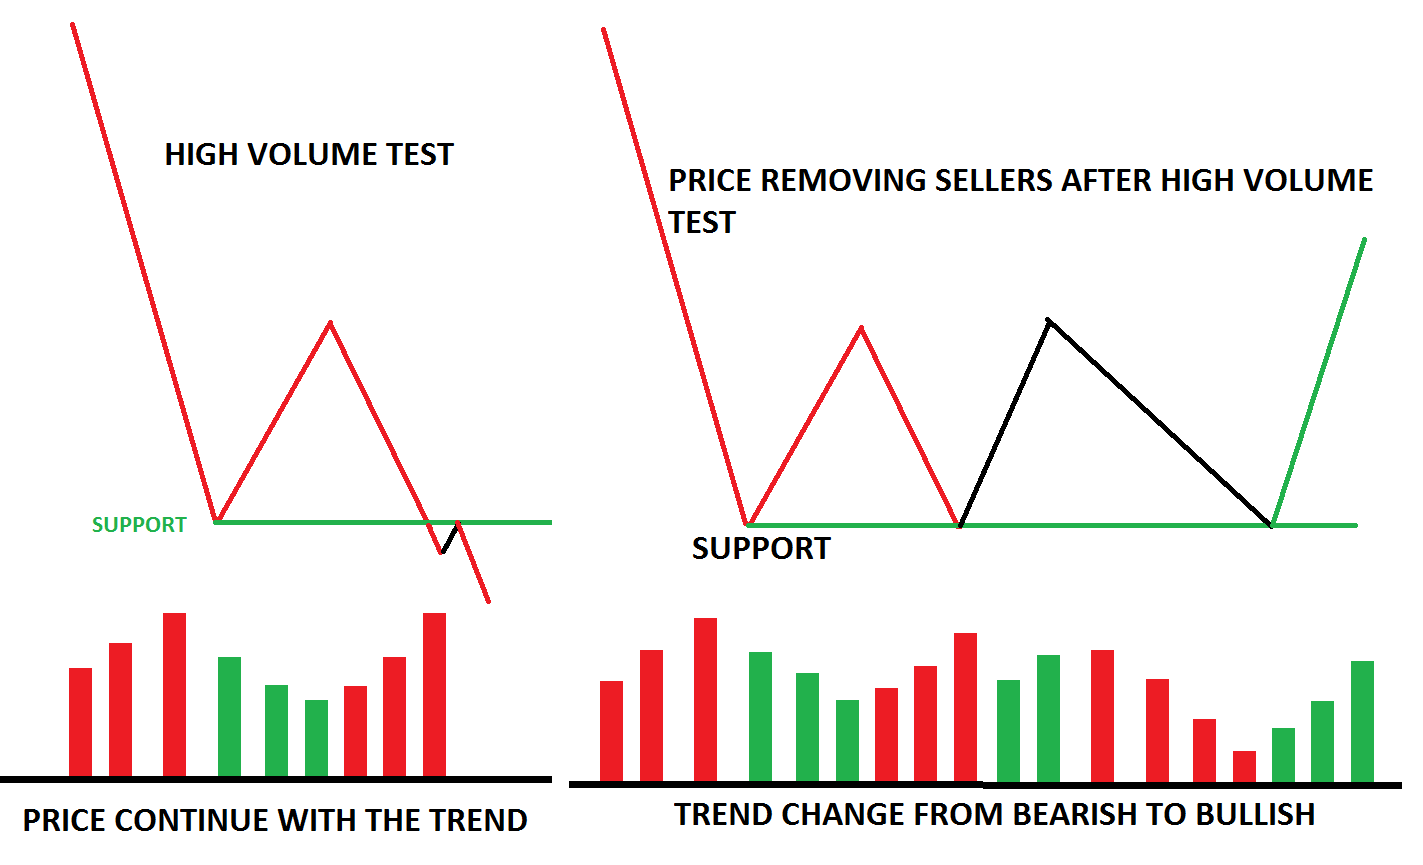 How to Finding Entry Opportunity using Volume Spread Analysis in Trading